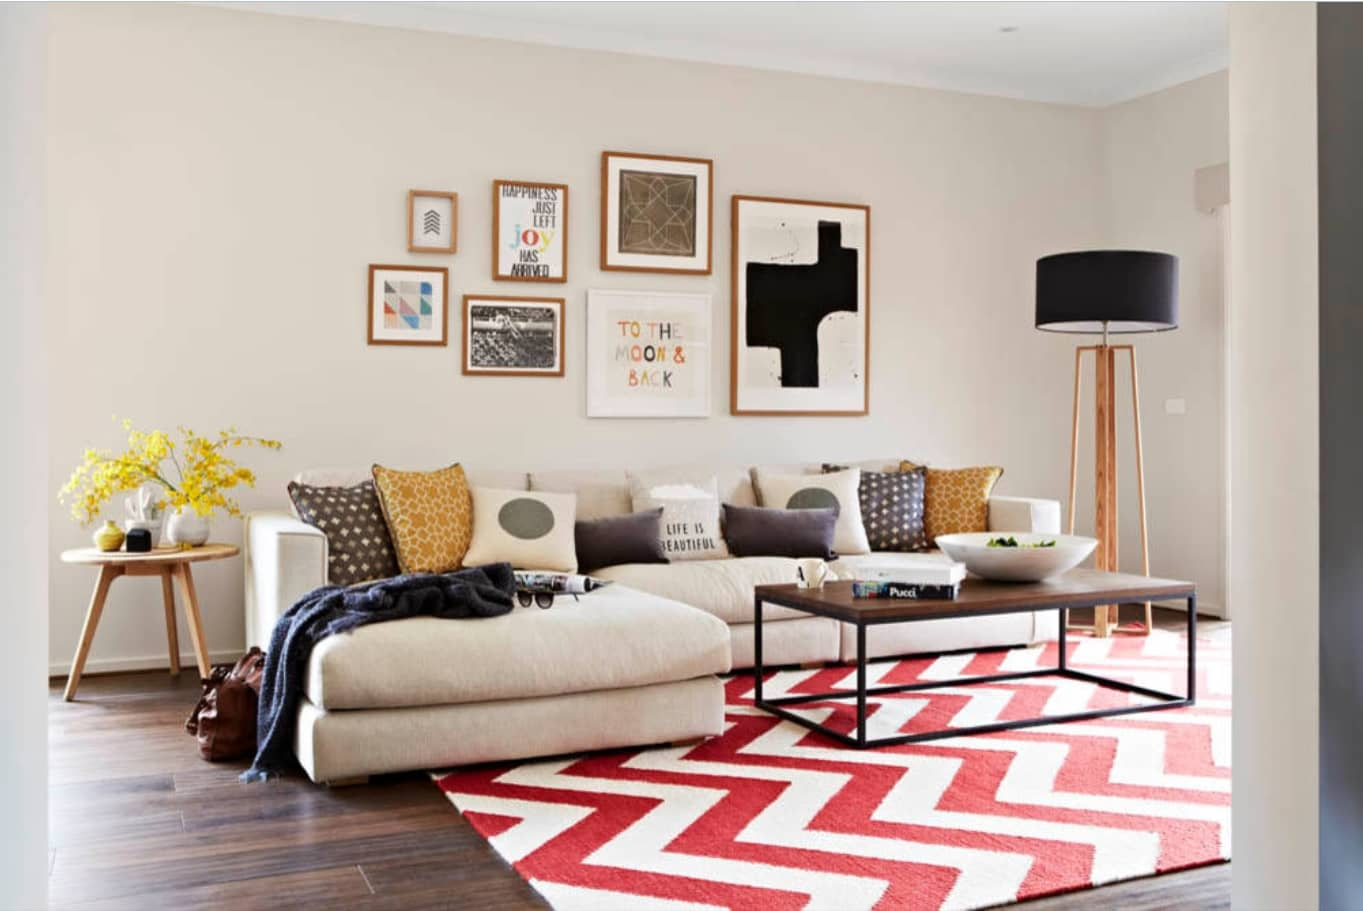 How to Decorate a Living Room on a Budget. Wavy colorful rug and the pictures to revive the atmosphere